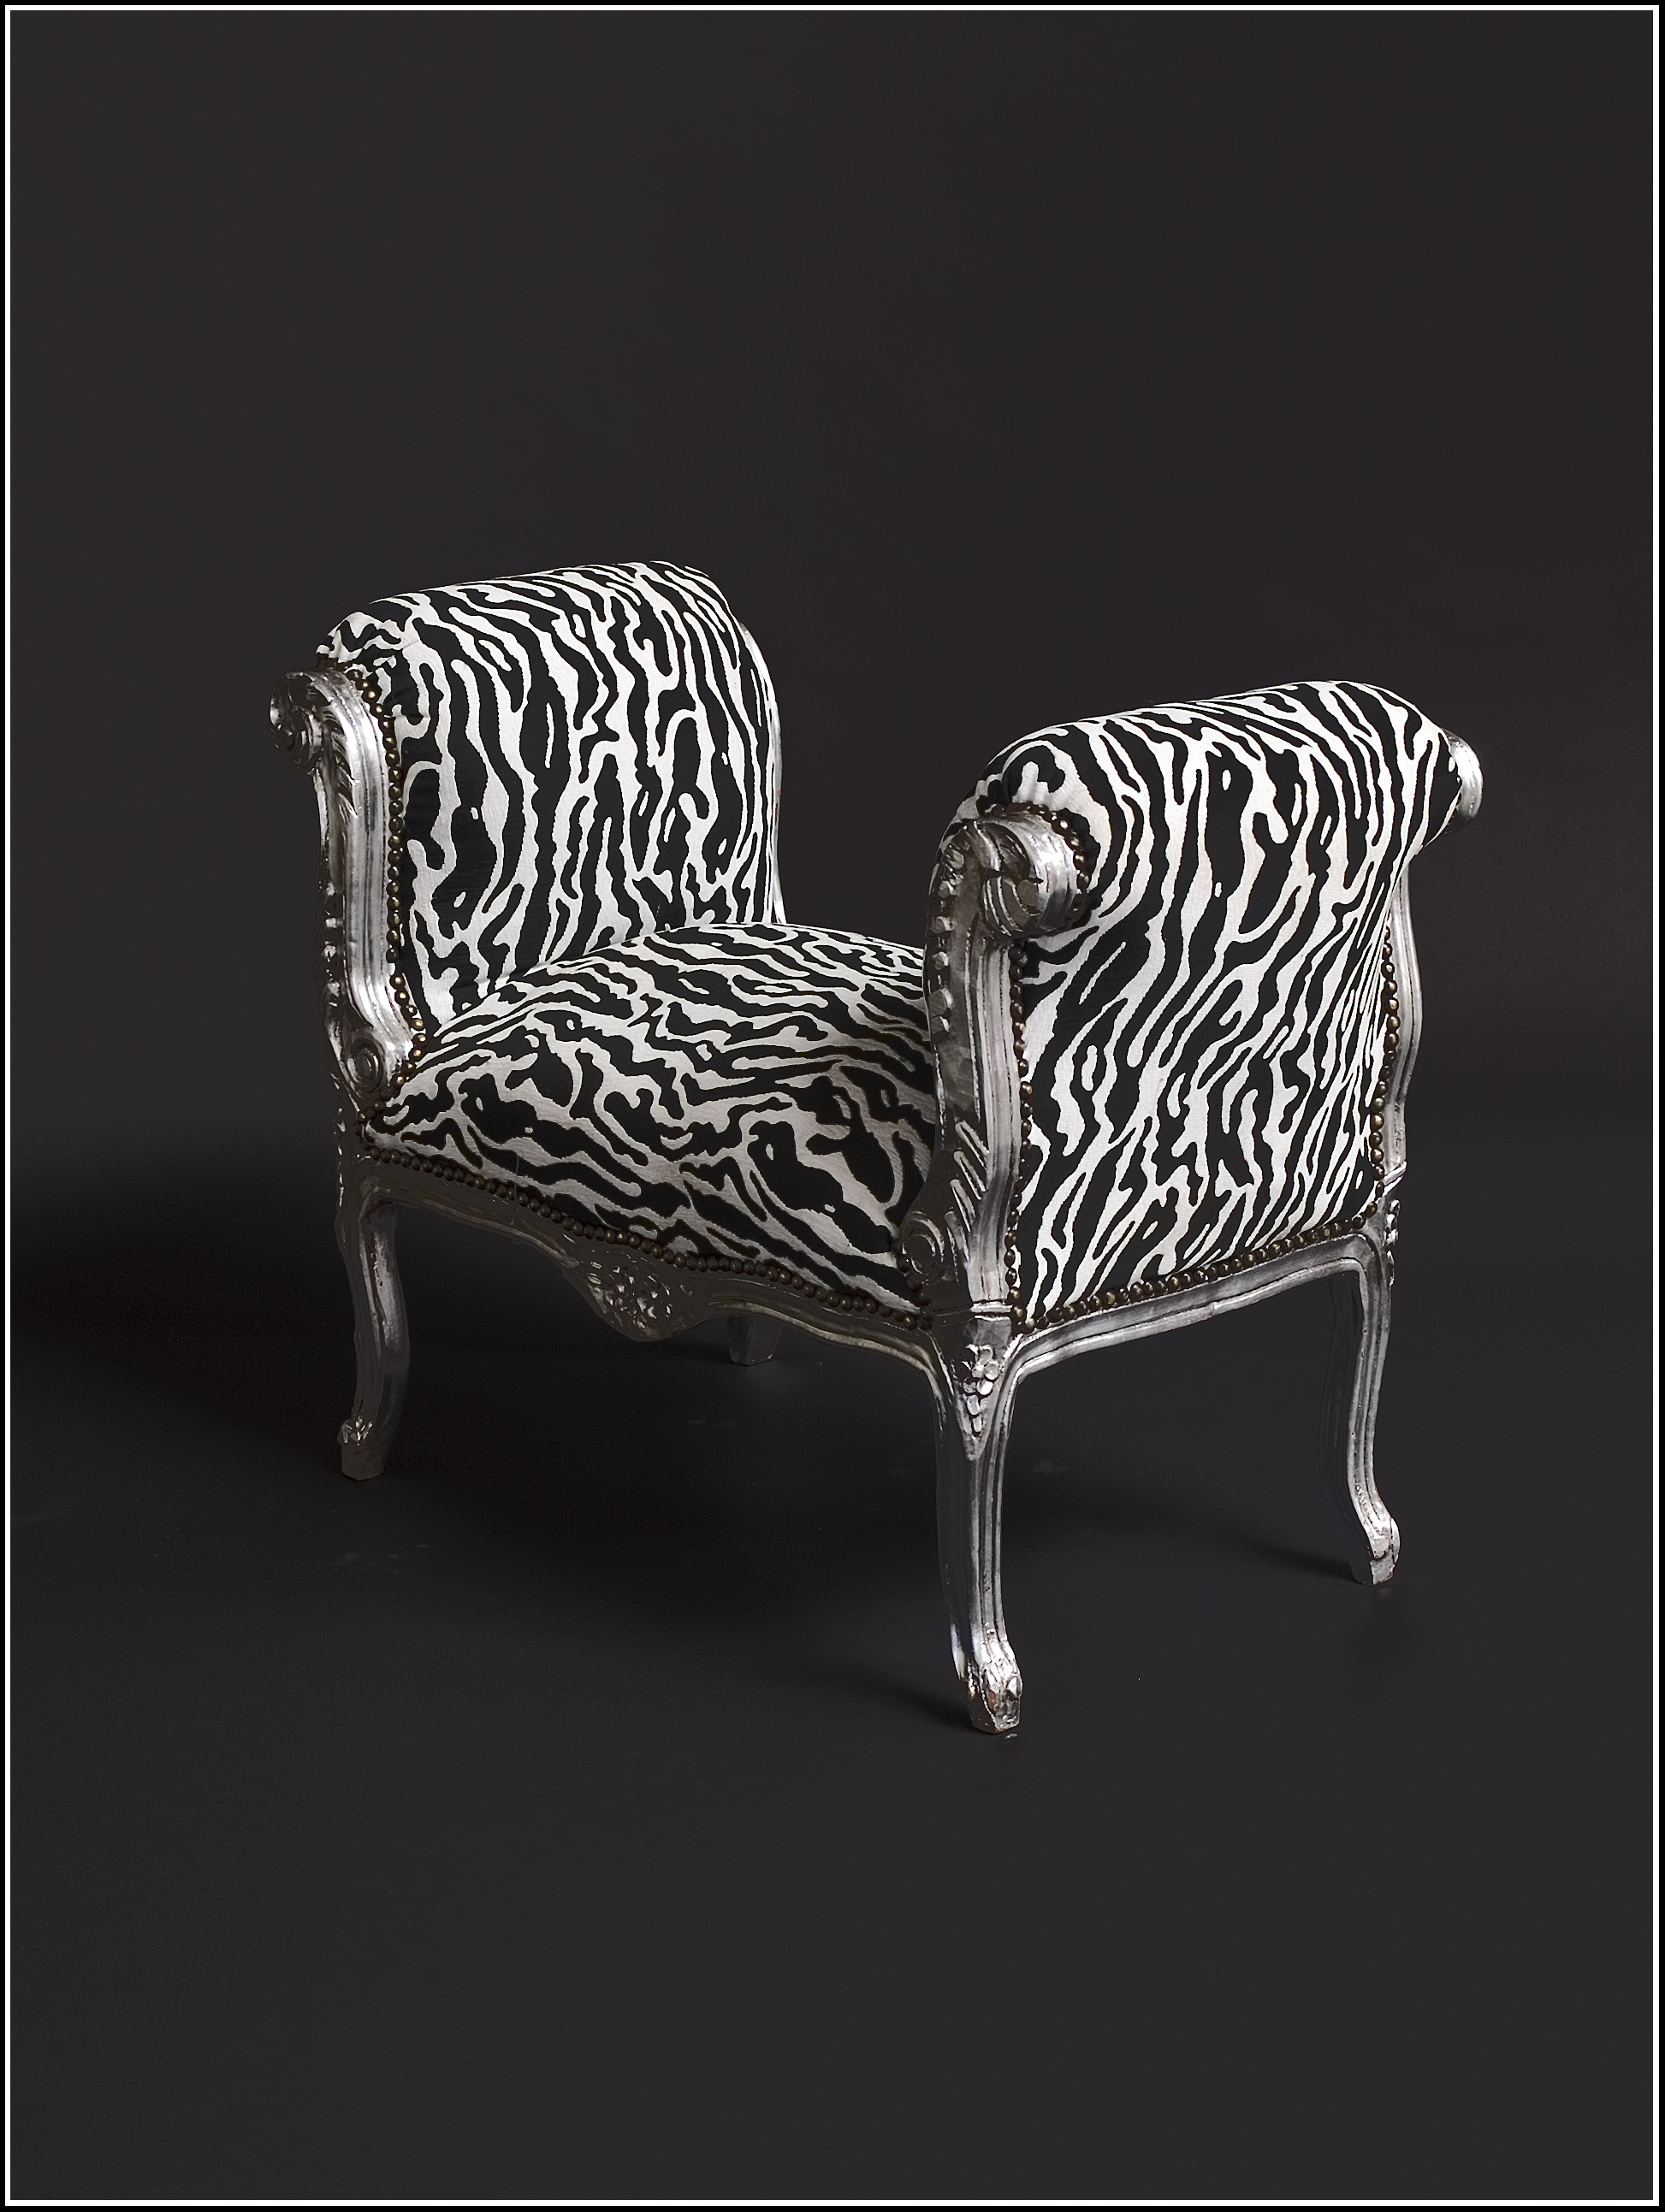 barock deluxe m bel barock sitzbank zebra schwarz weiss silber. Black Bedroom Furniture Sets. Home Design Ideas